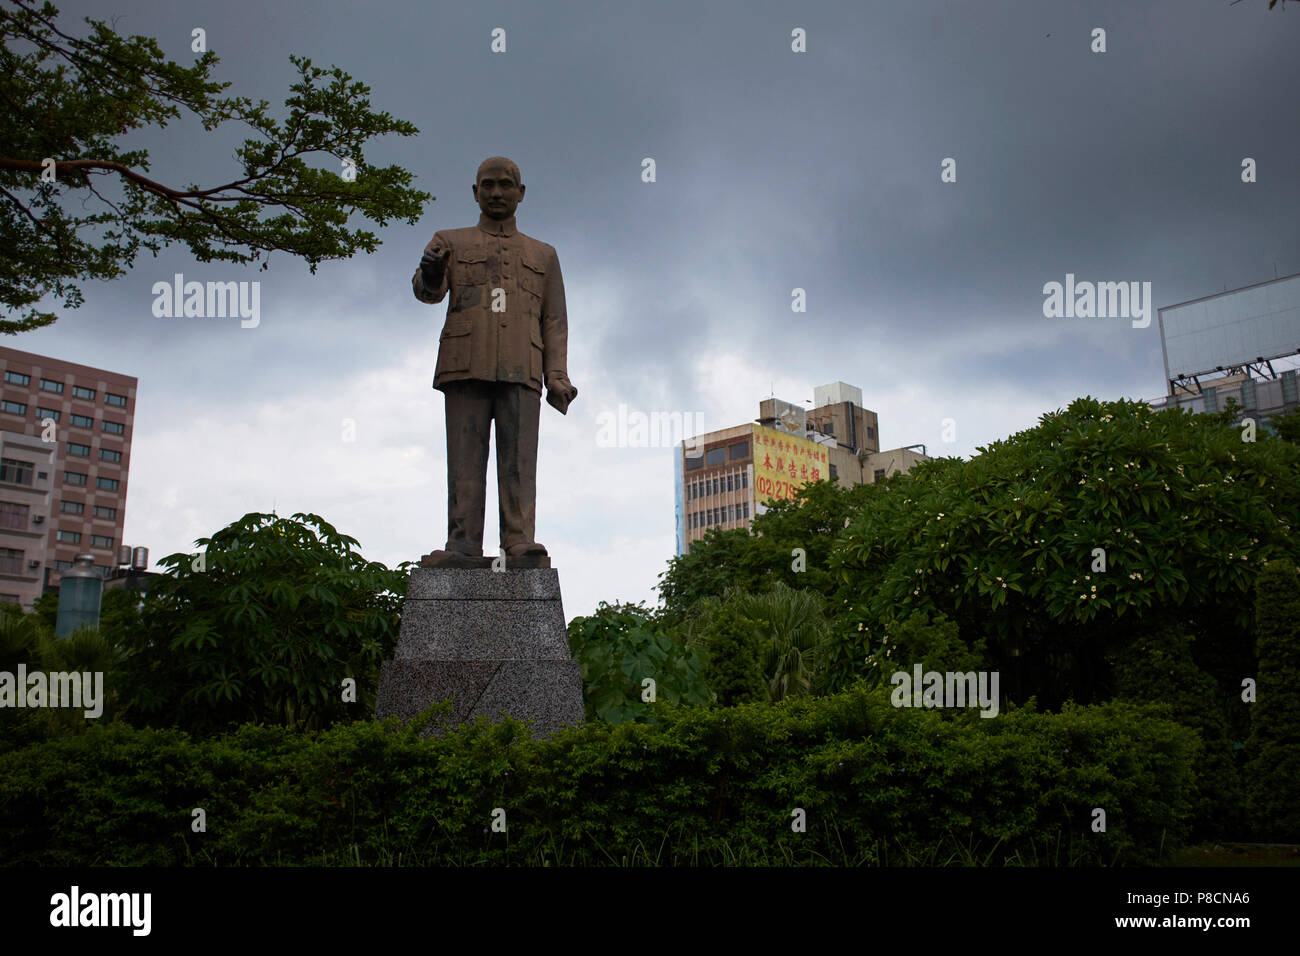 Just few meters away from the 228 Memorial Park in Kaohsiung, a huge statue of Sun Yat-sen has been put up. The 228 Incident refers to the 28 February 1947 massacre of Taiwanese by Chinese Nationalist troops. Tens of thousands of Taiwanese were killed during the so-called White Terror days under the rule of the Kuomintang - the Chinese Nationalist Party. November 2, 2017 Credit: Nicolas Datiche/AFLO/Alamy Live News - Stock Image